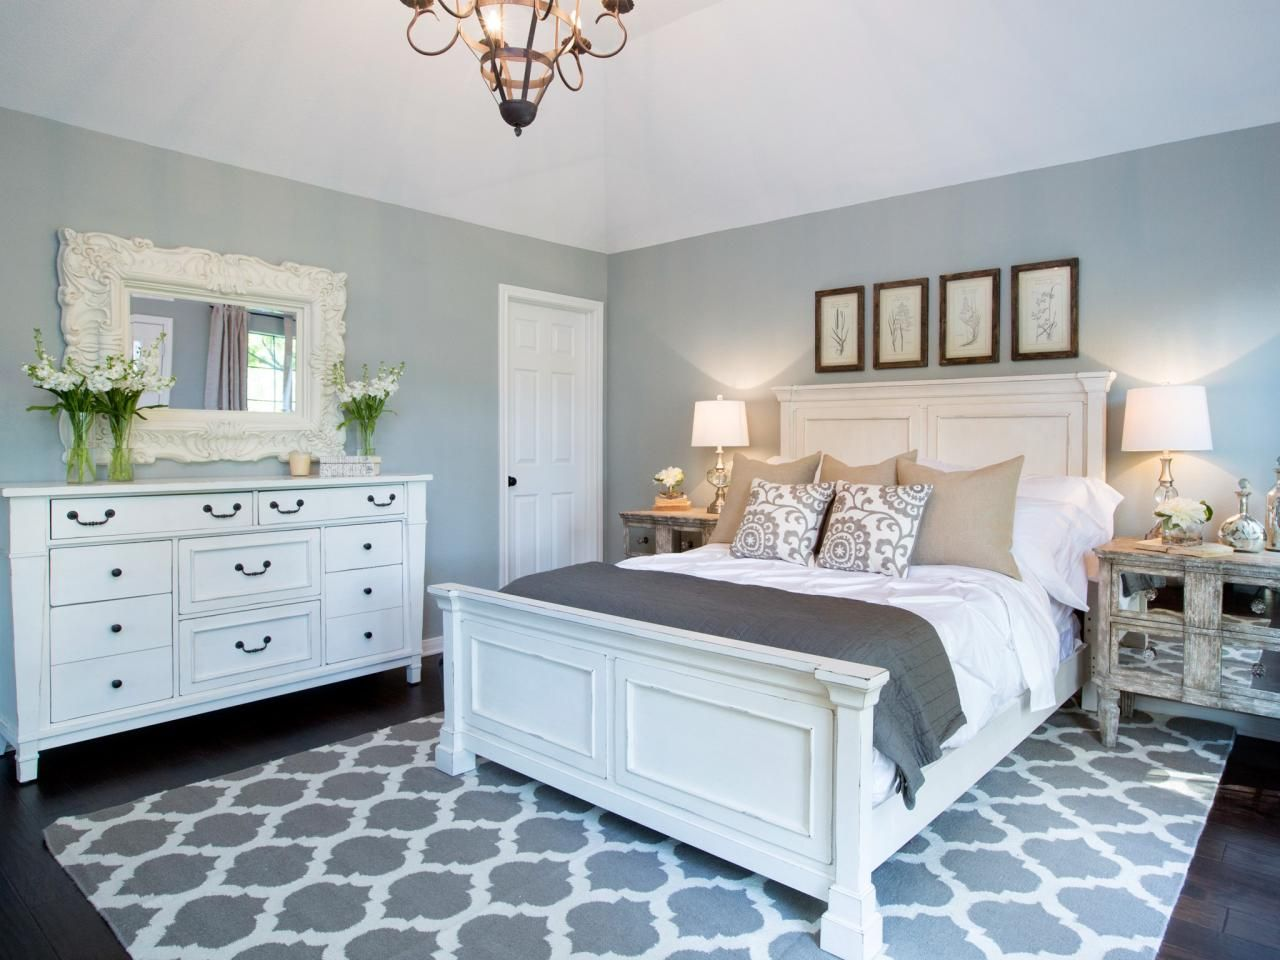 Colorful Bedroom Designs Photos Hgtvs Fixer Upper With Chip And Joanna Gaines Hgtv